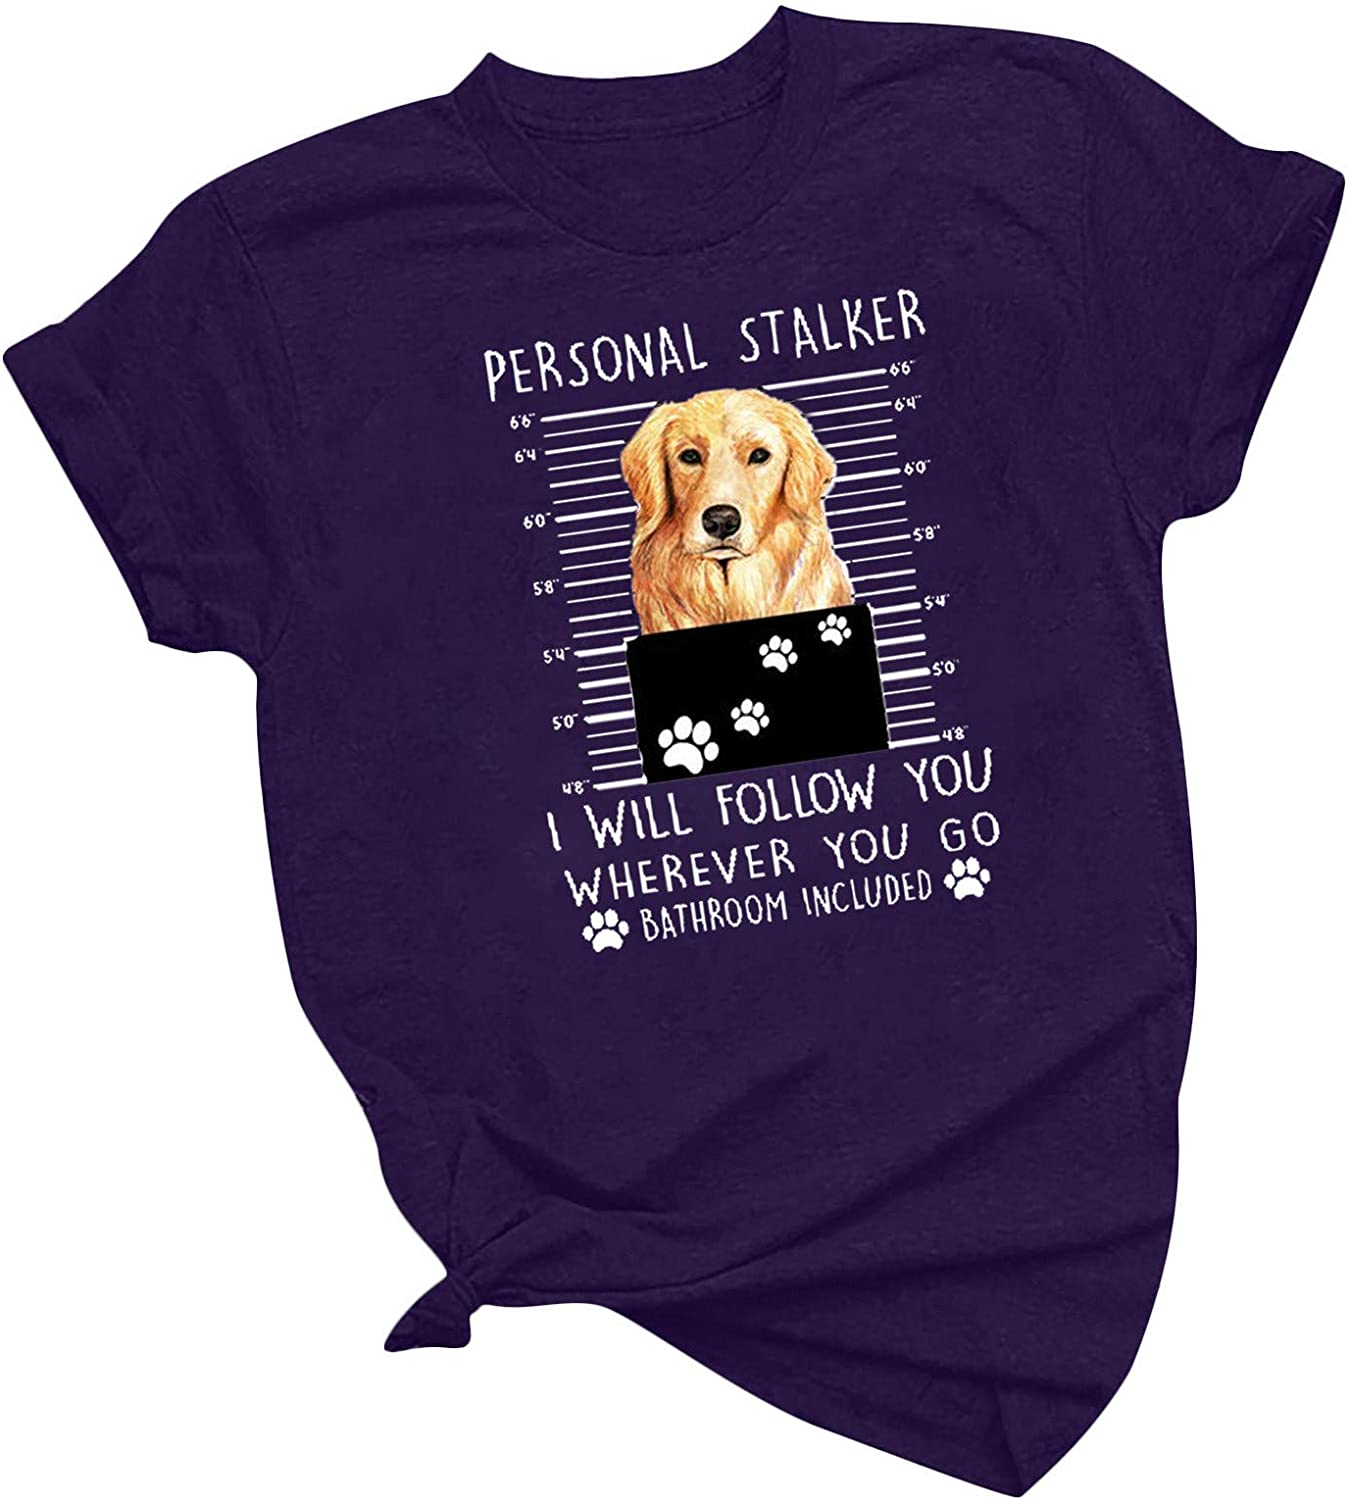 Personal Stalker Dog Shirt Womens Short Sleeve Tshirt Golden Retriever and Dog Paw Graphic Tees Dog Lover Owner